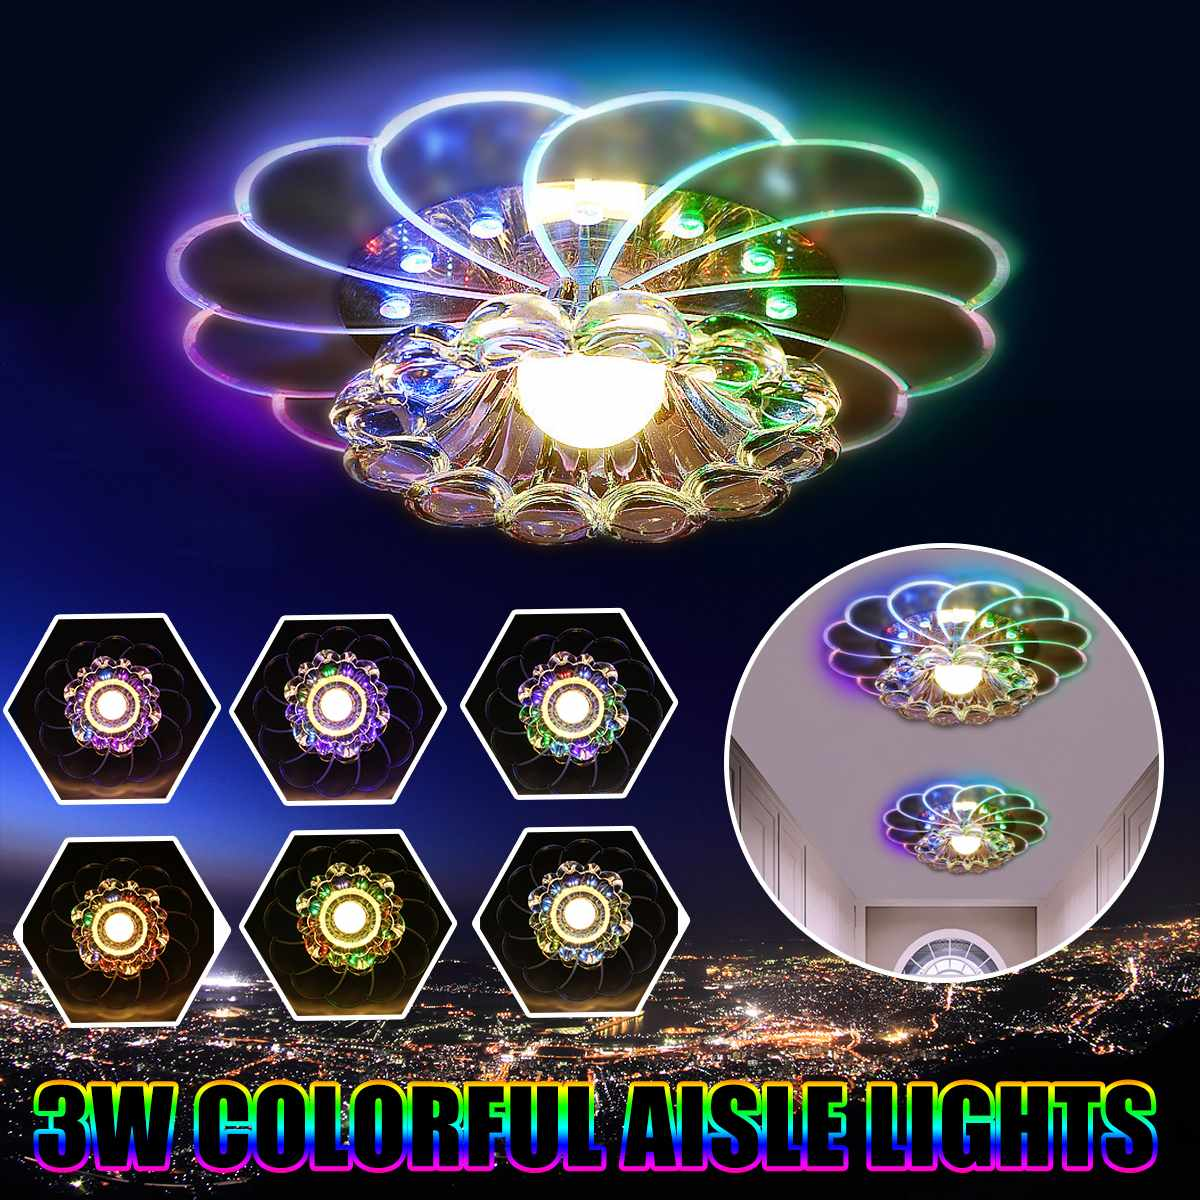 LED Ceiling Light Lamps Colorful Crystal Flower For Living Room Porch Lighting Ceiling Light Fixtures 3W